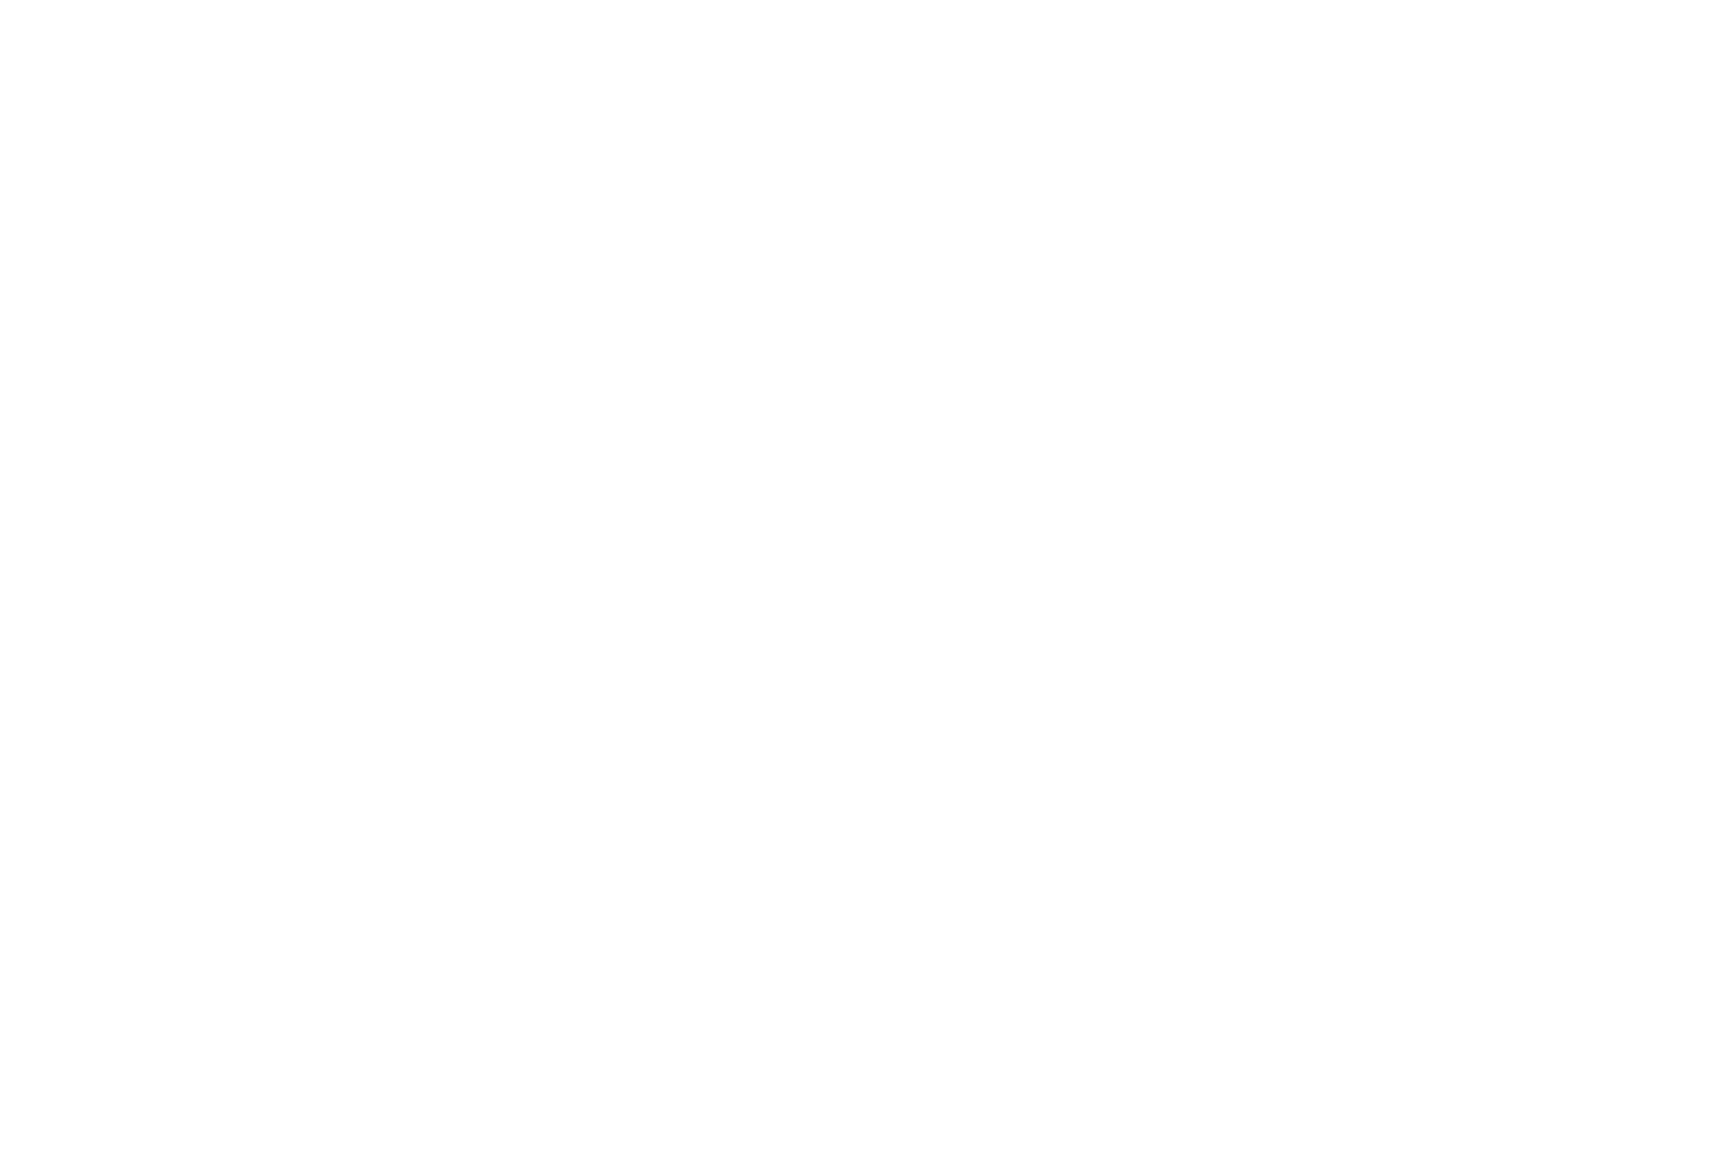 SEMI-FINALIST - Vail Film Festival Screenplay Competition